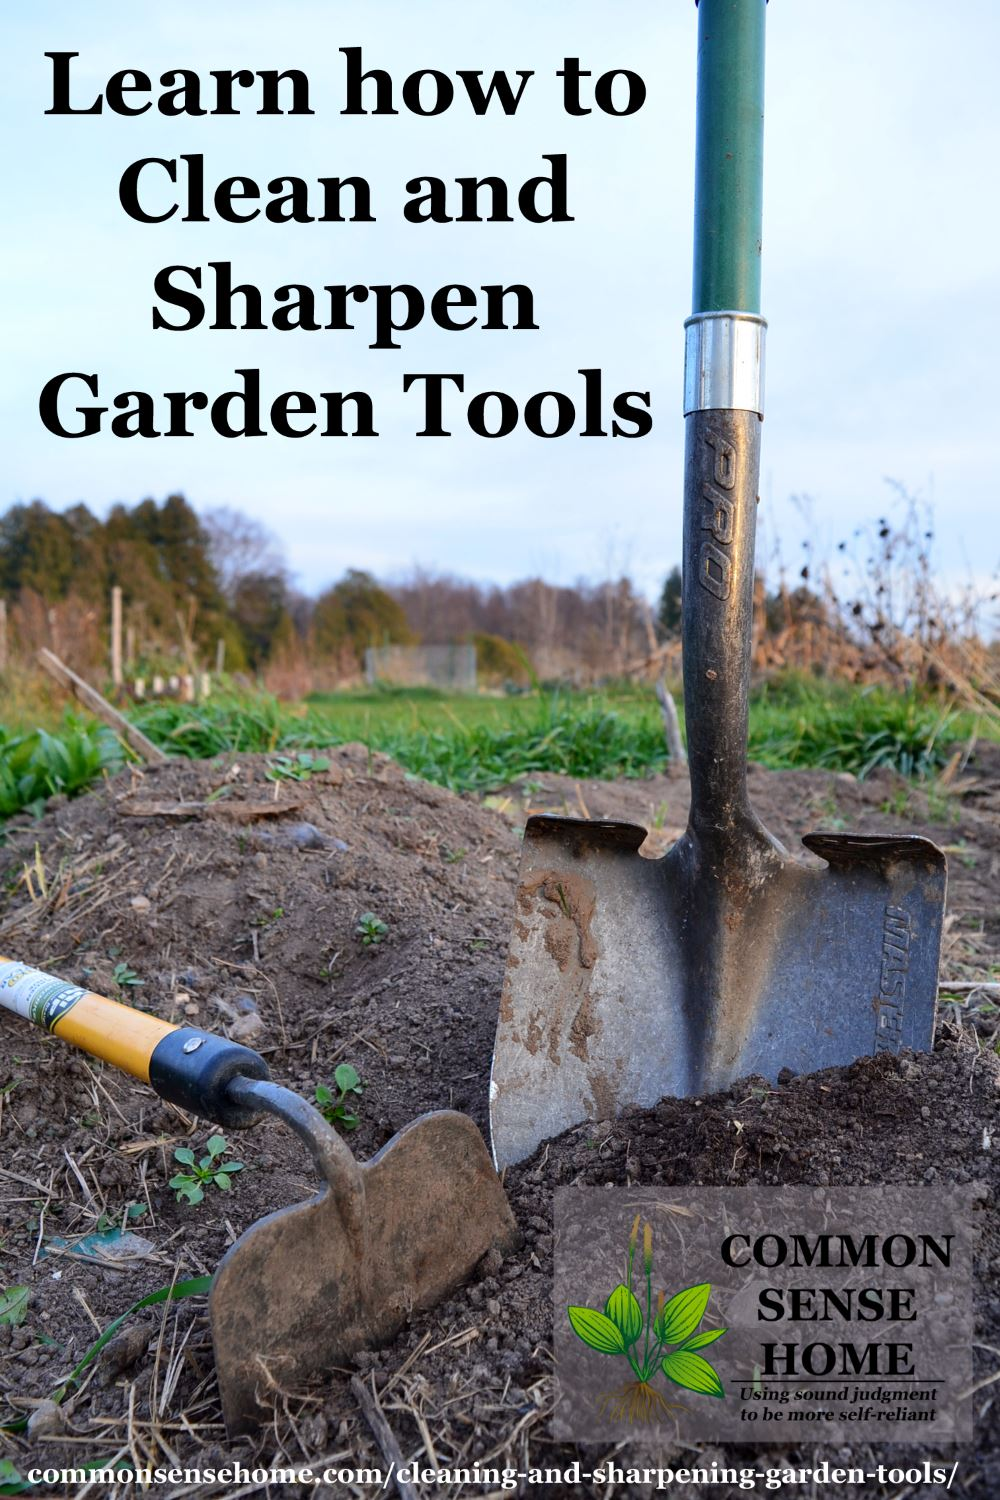 Tools last longer when cleaned and sharpened, plus a well sharpened edge makes gardening easier - learn how to maintain your tools in a step-by-step process.